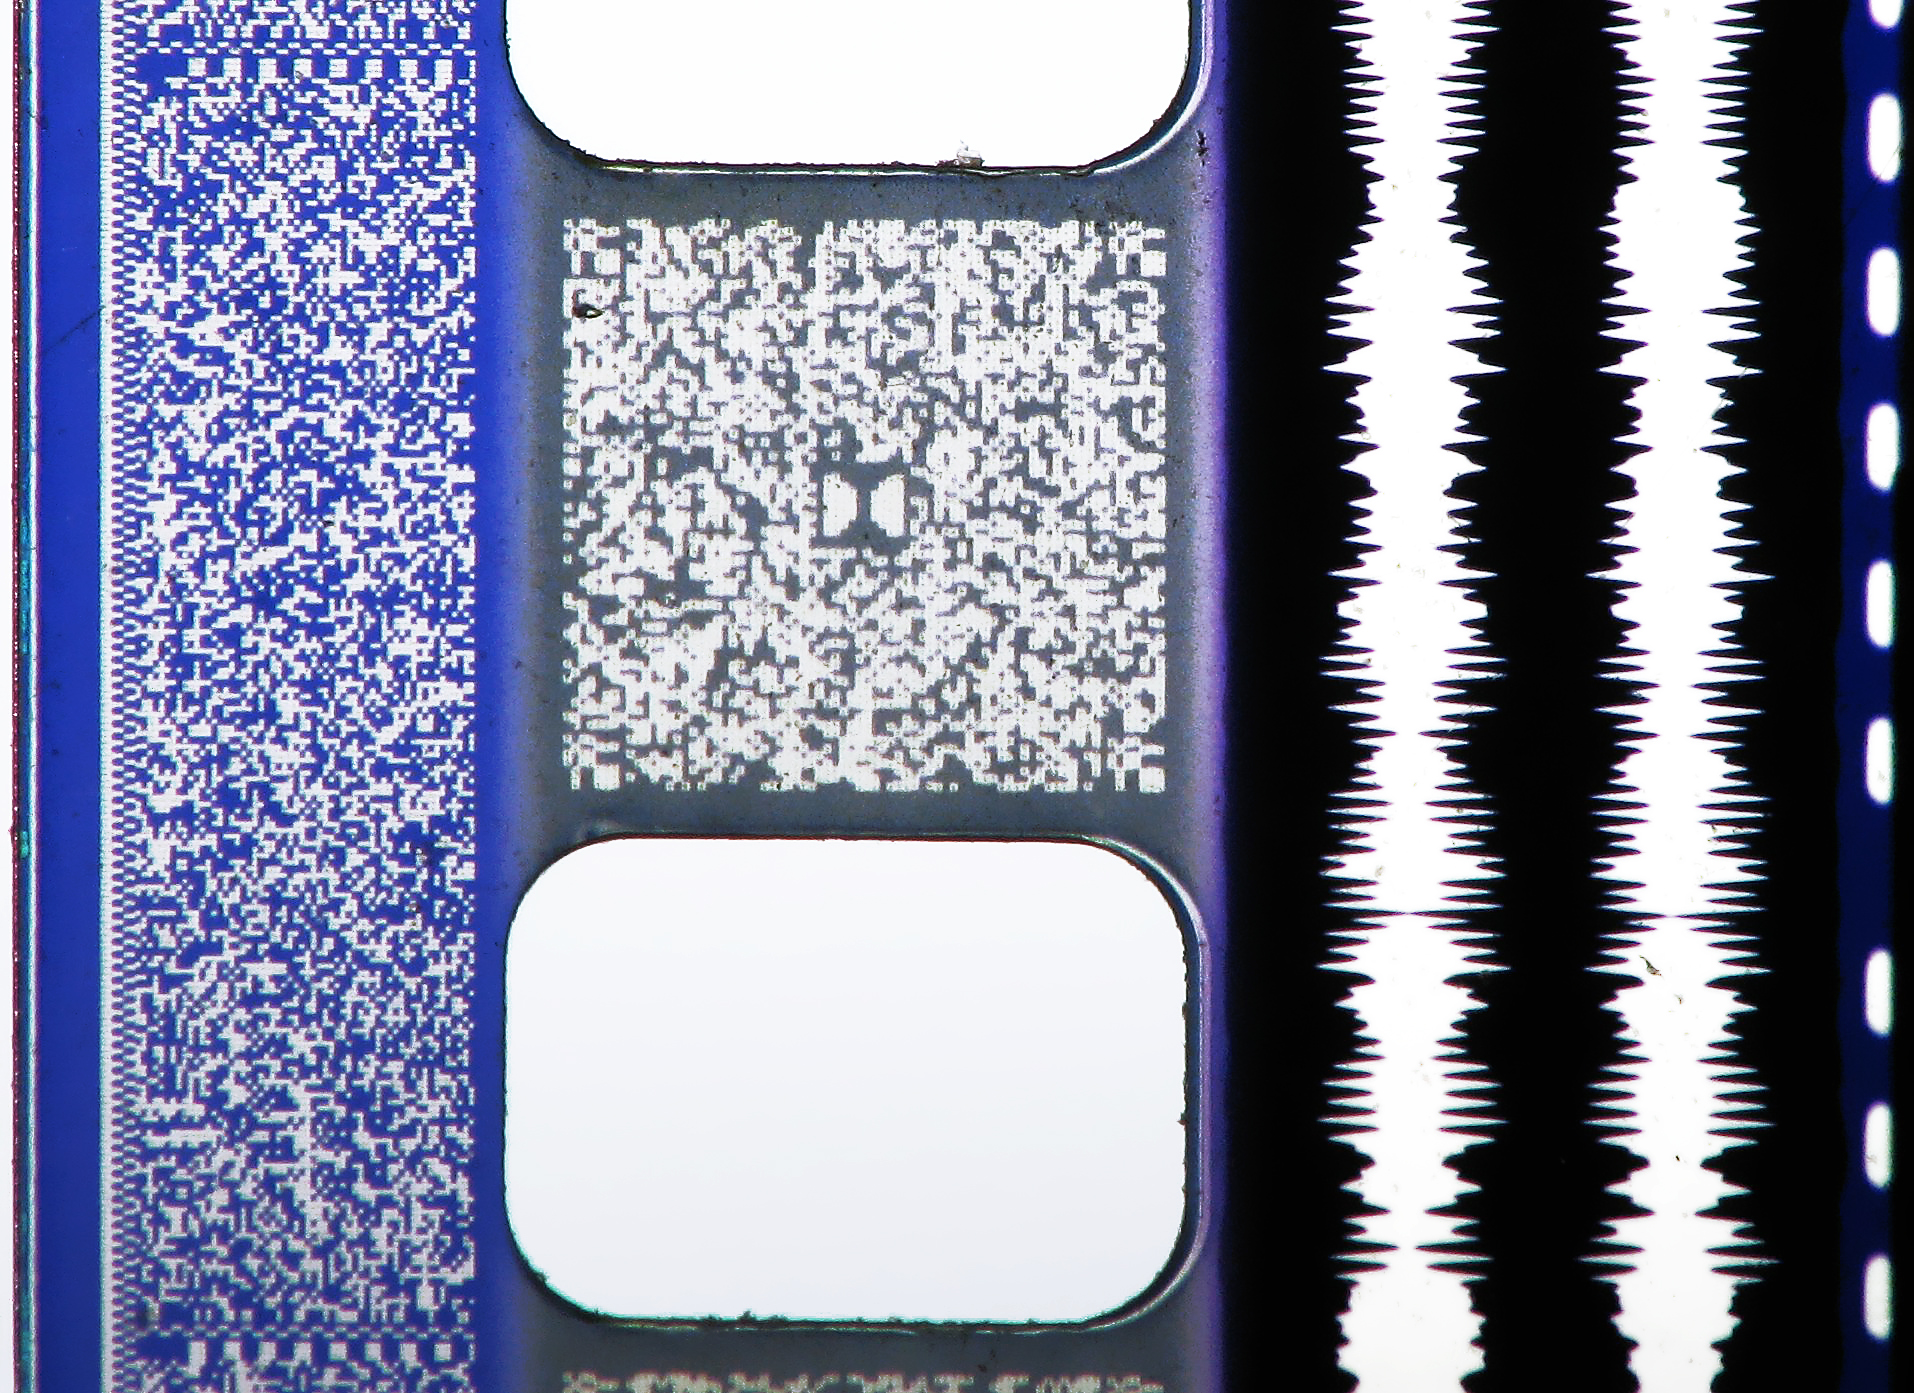 Oprical Sound - The optical sound technology for synching dialogue with a motion picture is about as old as talking pictures themselves. Few may be aware that It's the same technology used by naval ships to transmit secret codes, by Walt Disney to record his greatest film, and by proto-punk art-band Devo to produce weird sounds on their early recordings.Read article